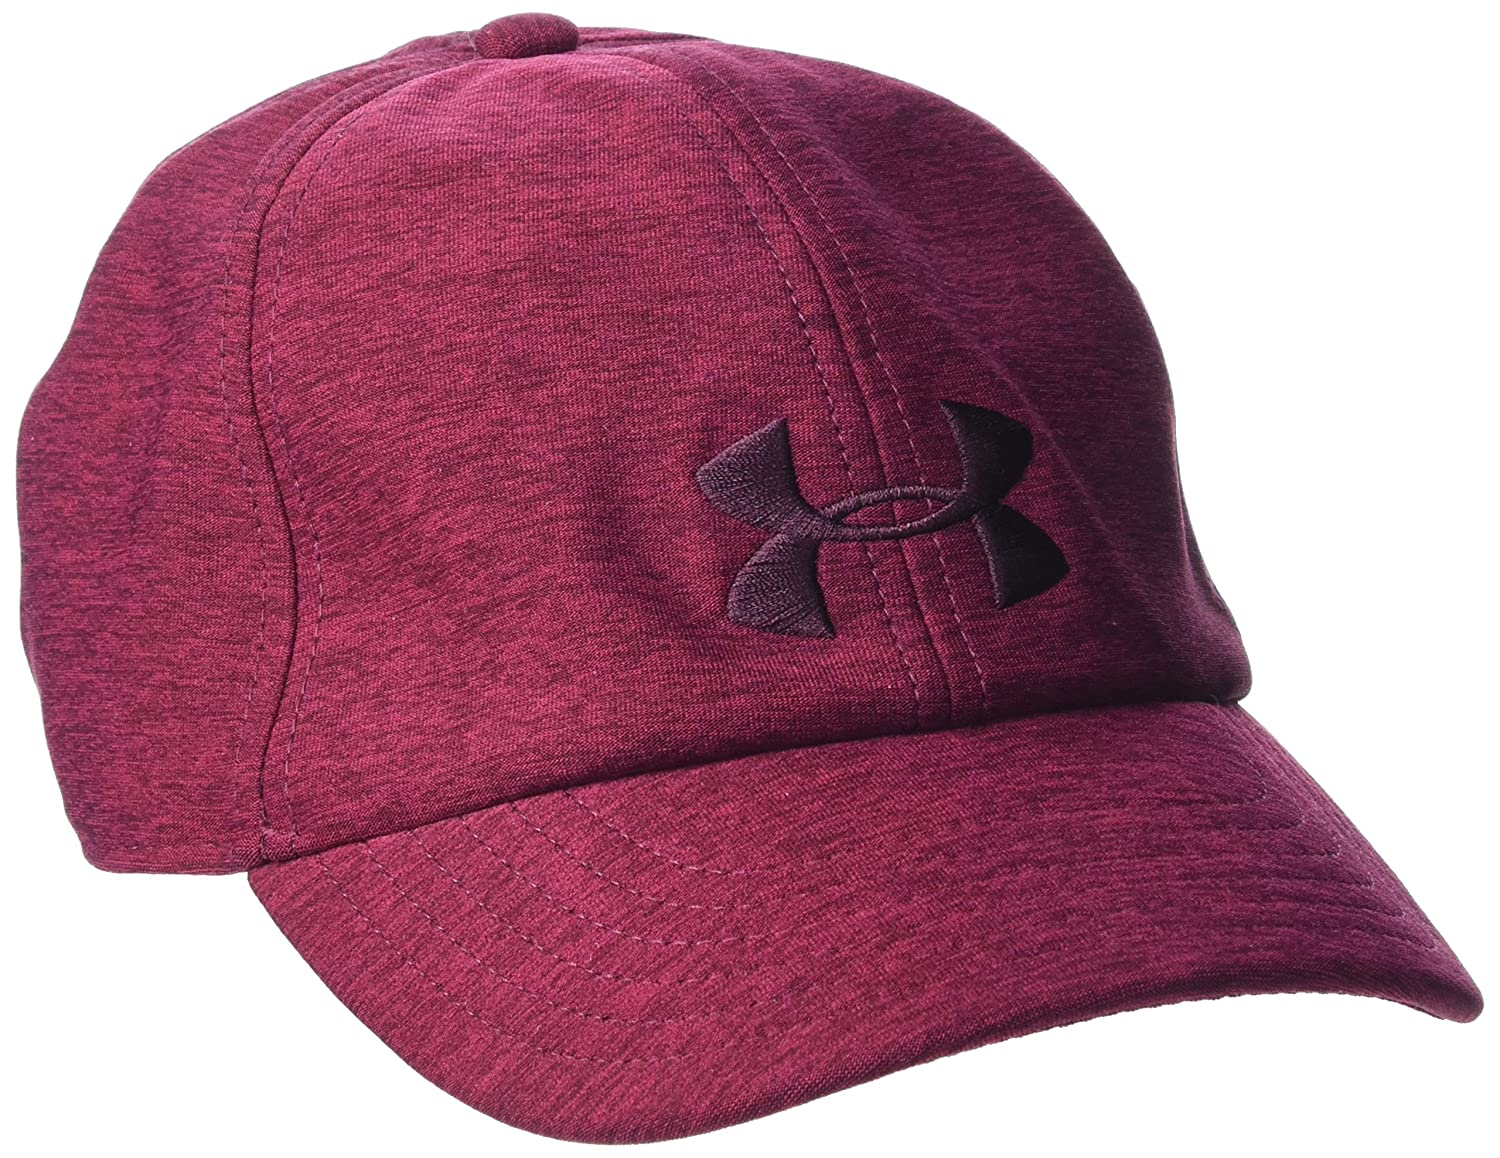 brand new b5524 a66b8 Under Armour Women s UA Twisted Renegade Cap, Raisin Red, One Size   Amazon.co.uk  Sports   Outdoors